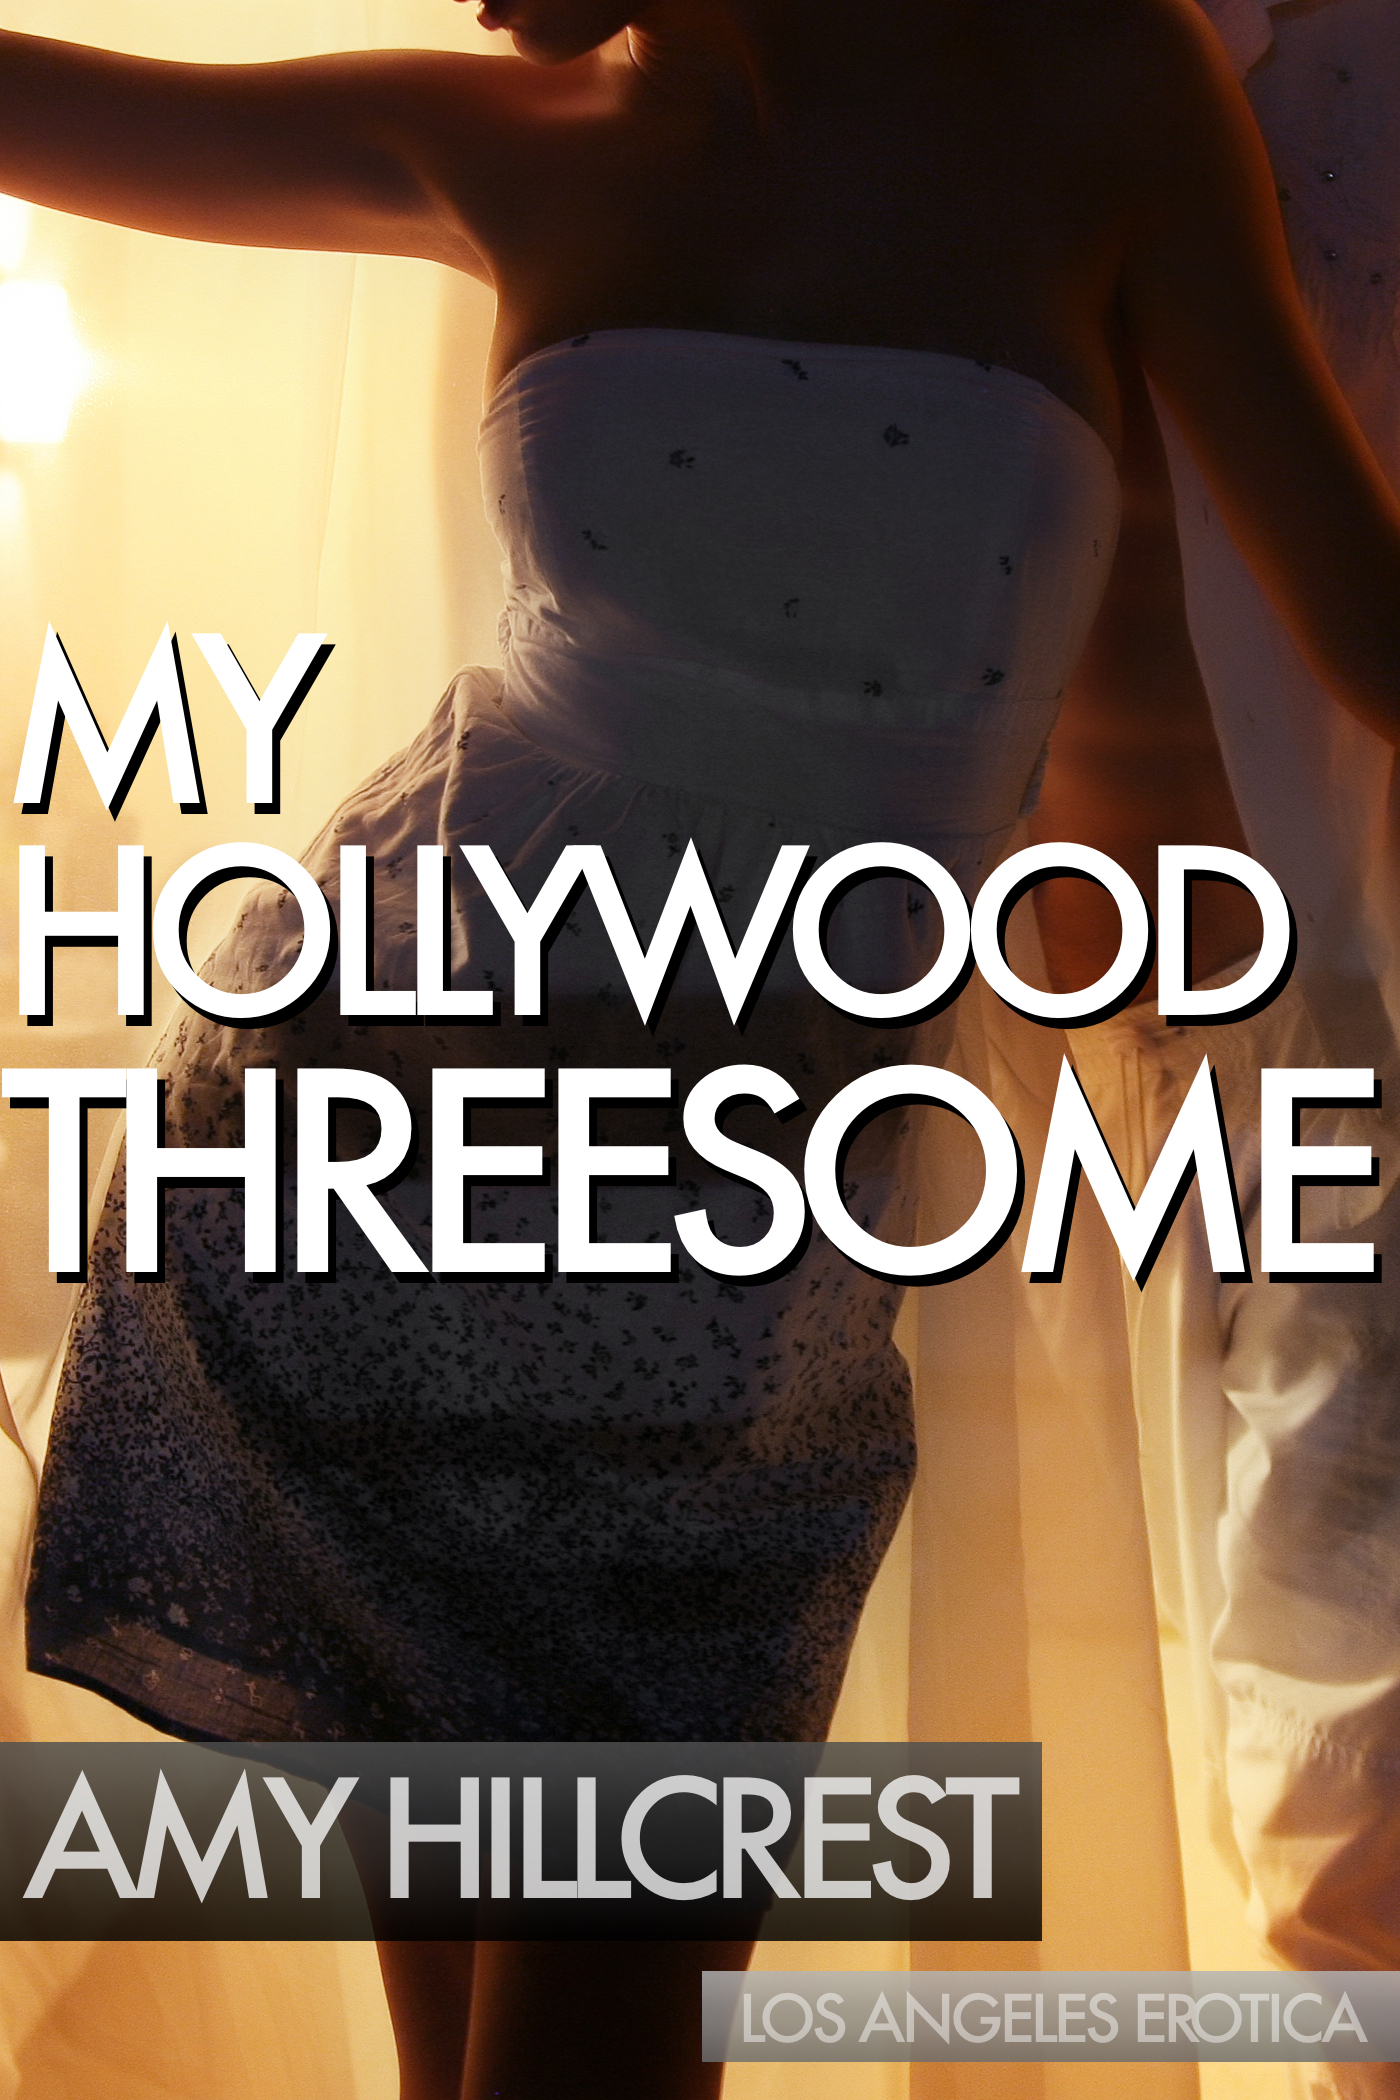 My Hollywood Threesome: Los Angeles Erotica Amy Hillcrest